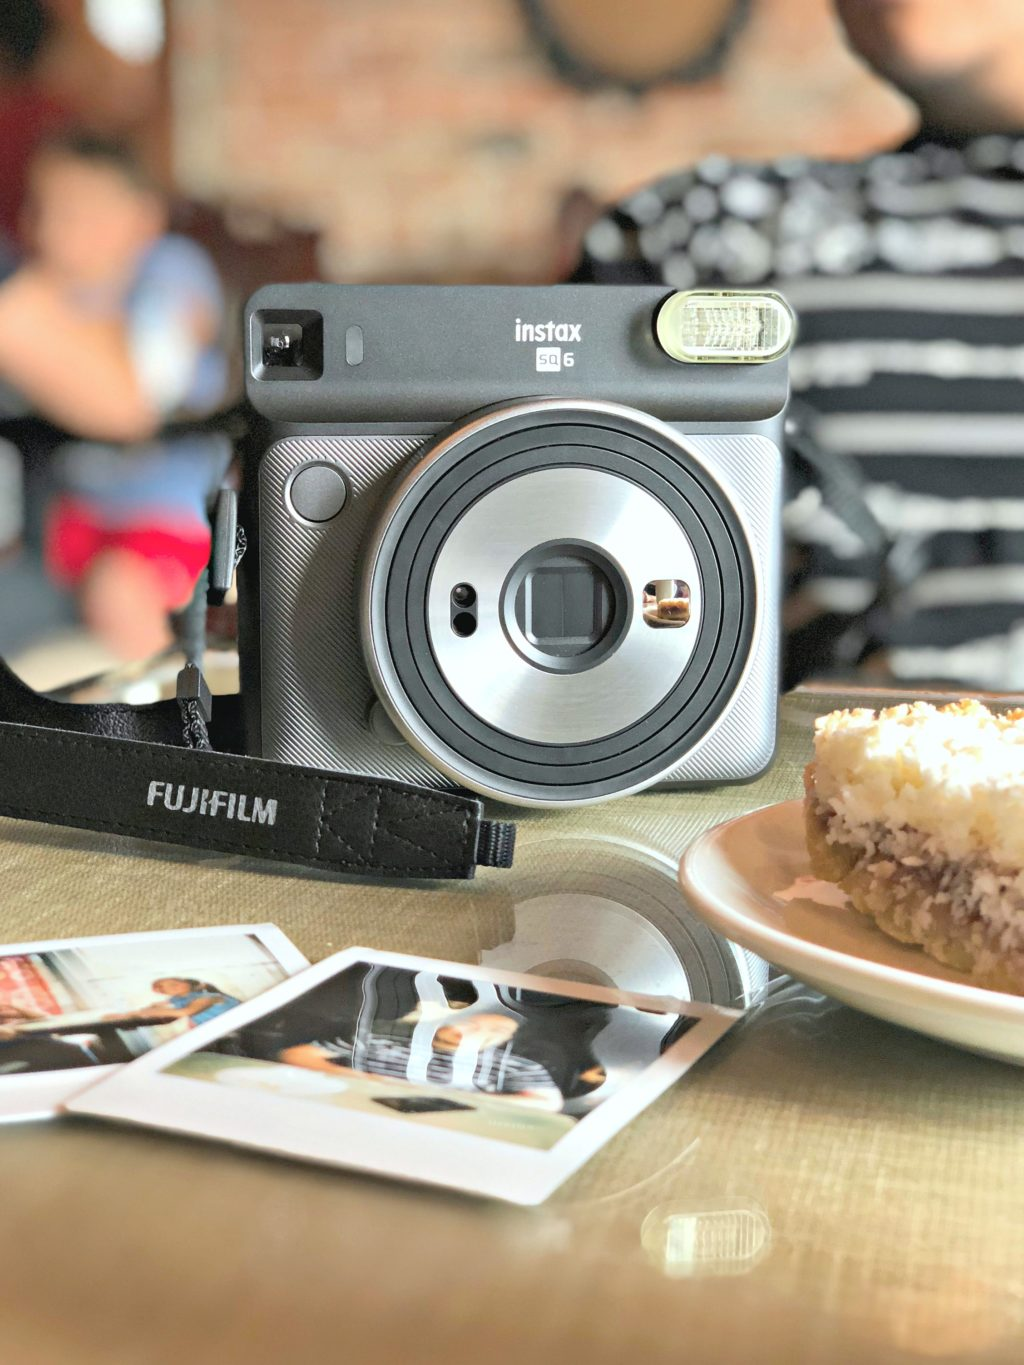 An instax camera with pictures at a cafe.